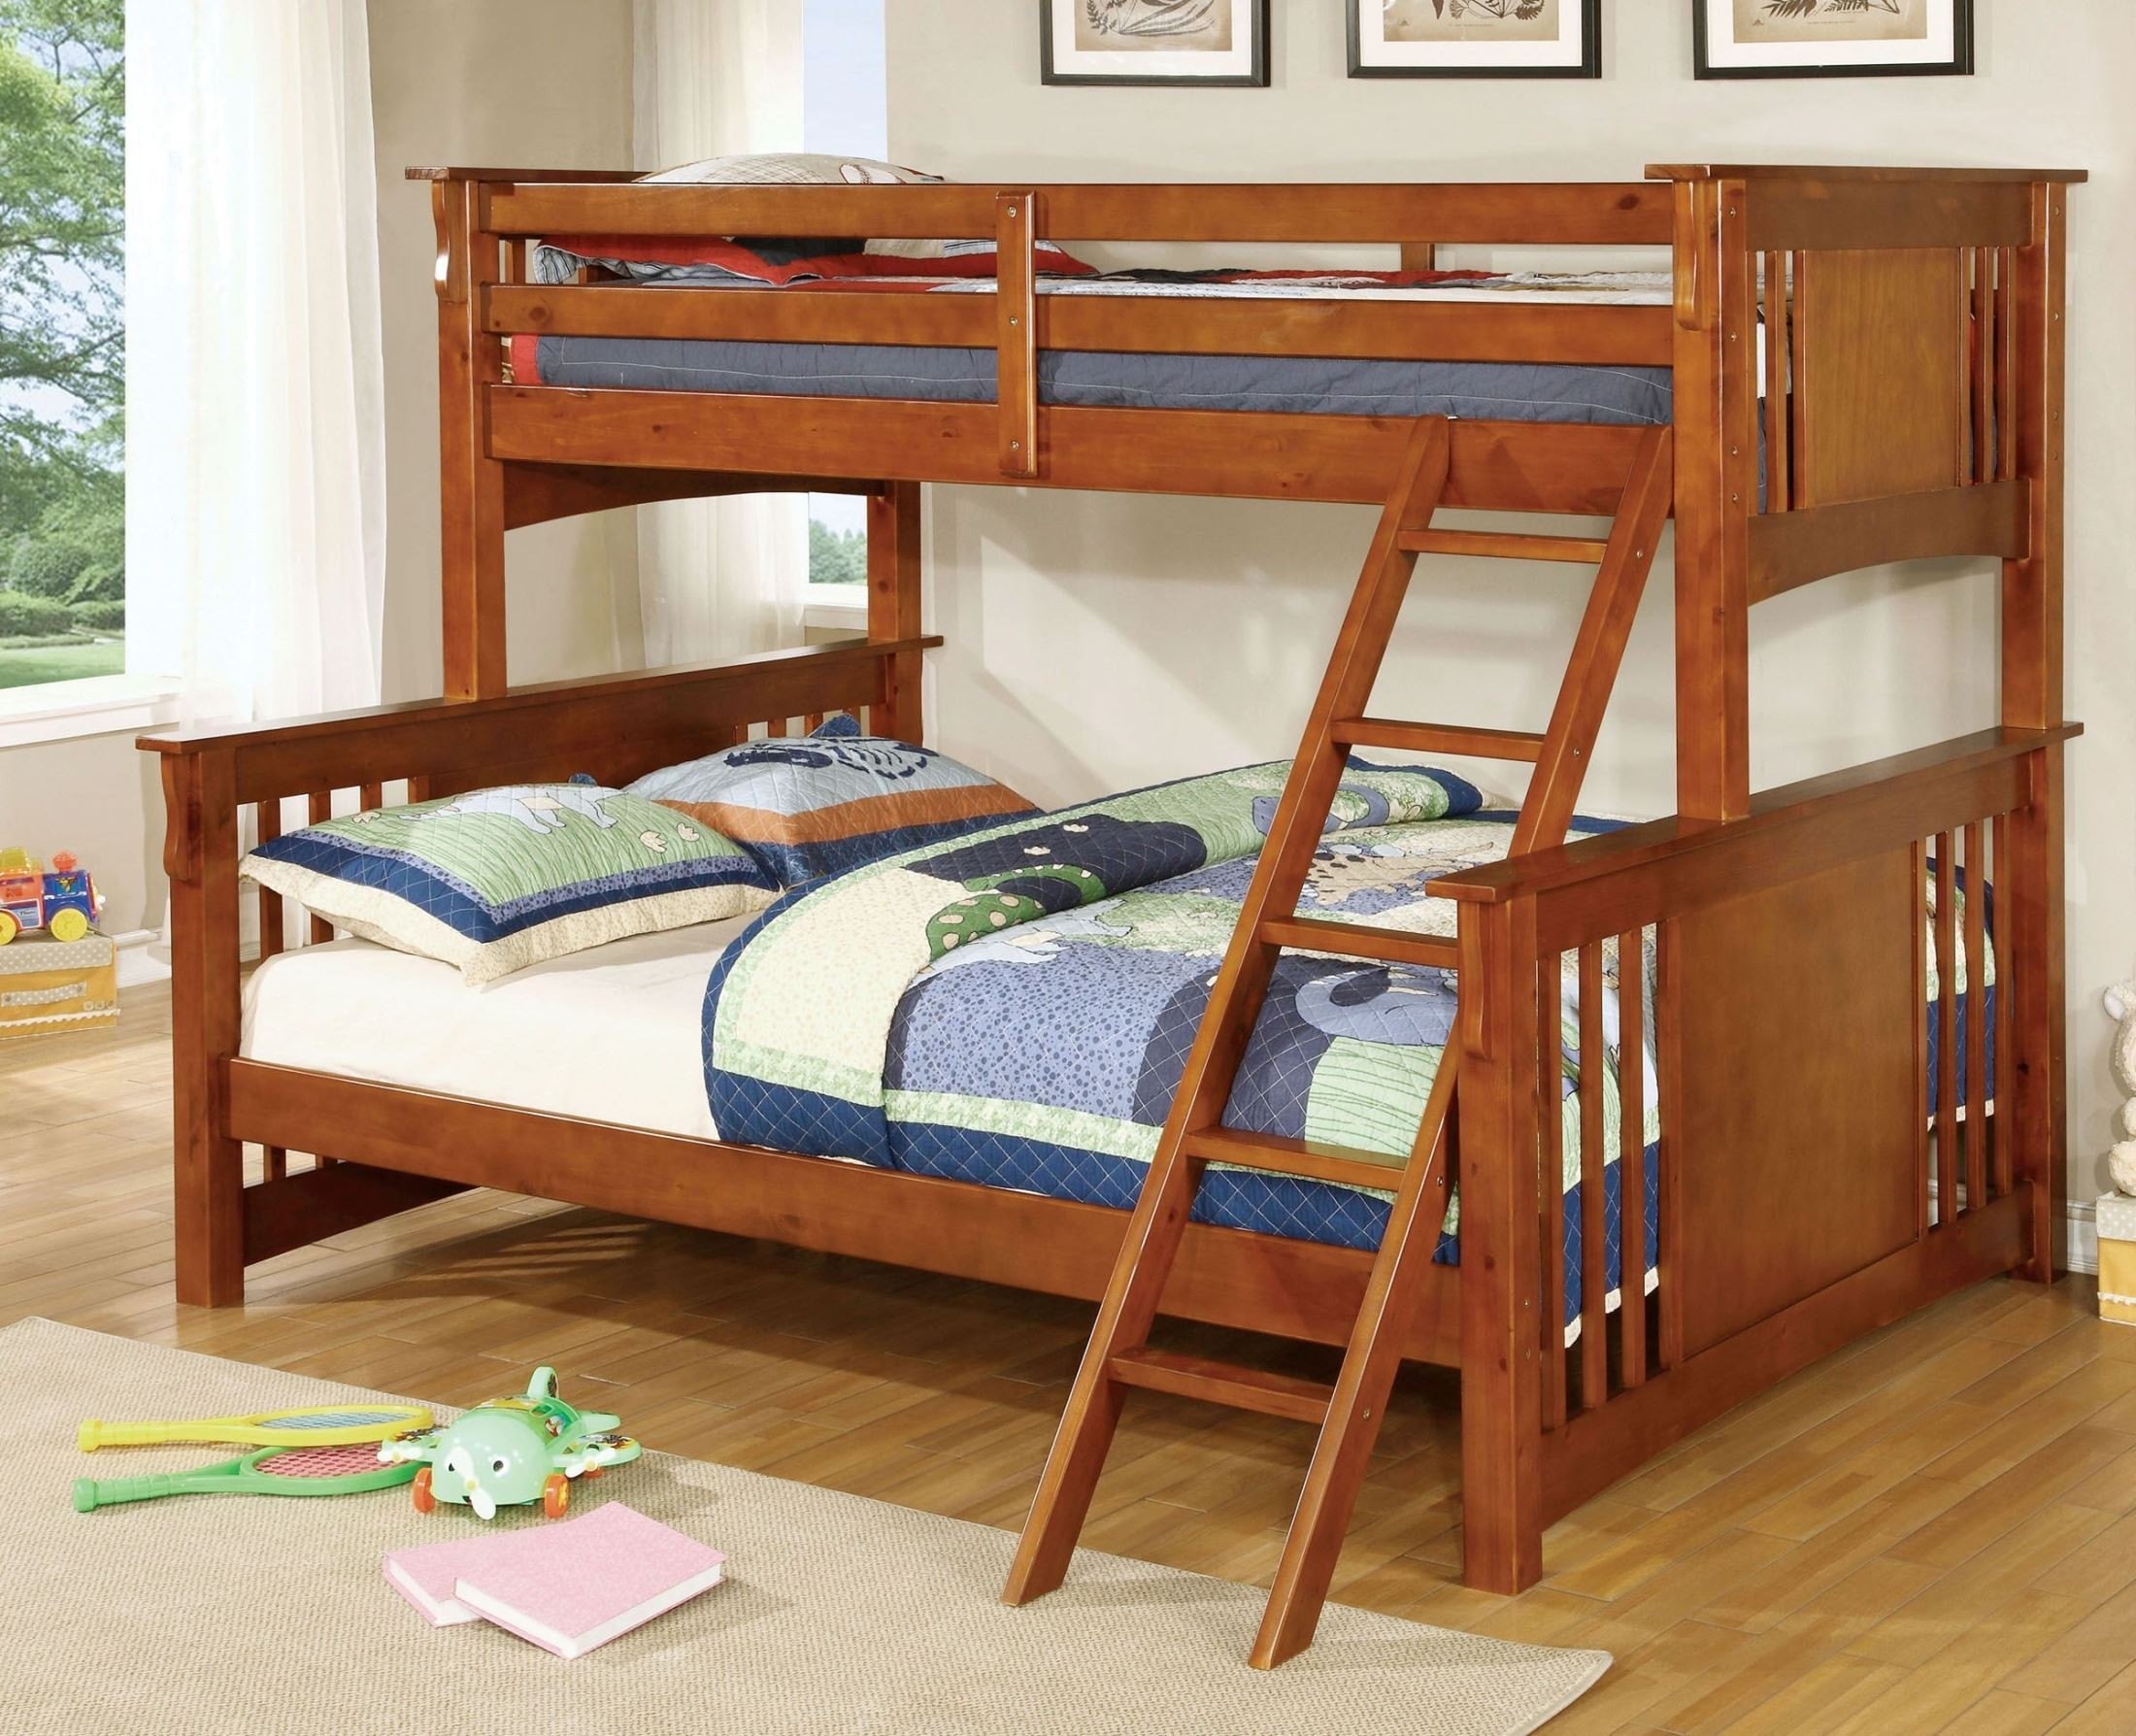 spring creek oak twin extra large twin over queen bunk bed from furniture of america cm. Black Bedroom Furniture Sets. Home Design Ideas